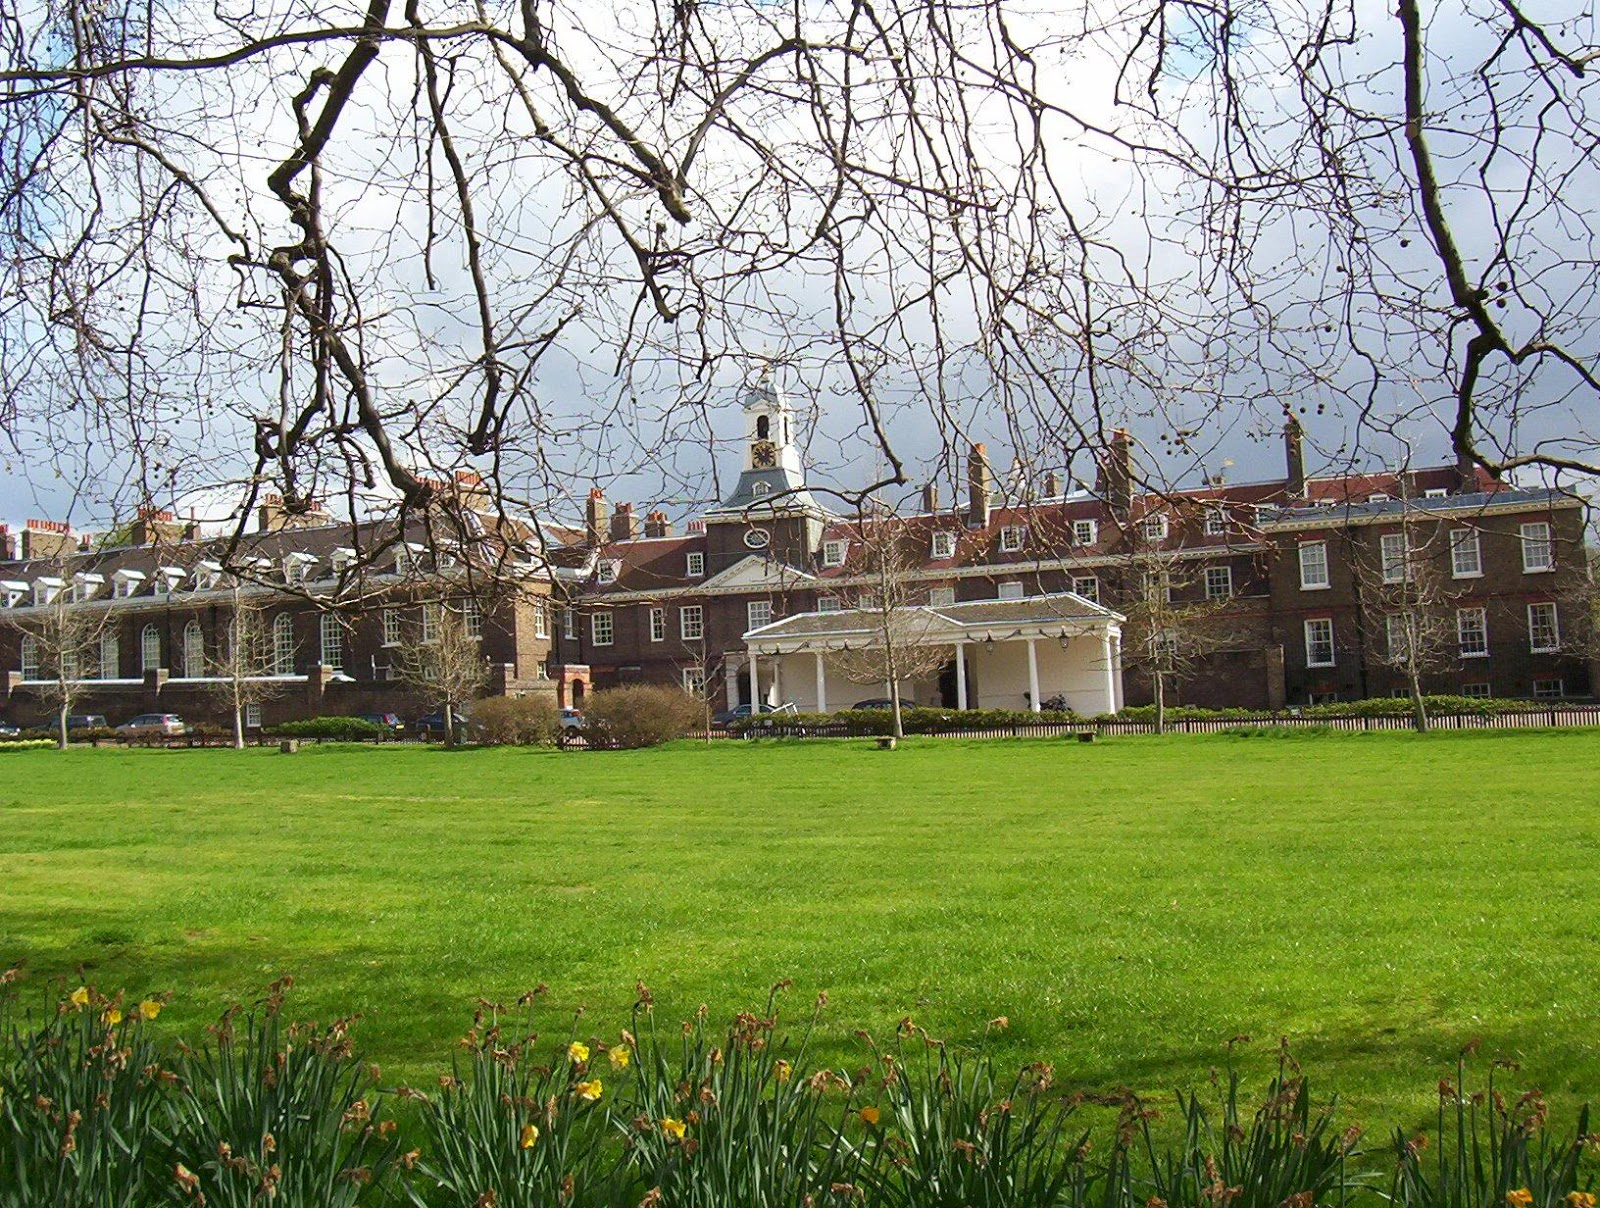 Houses of State: Kensington Palace - Photos and Floor ...